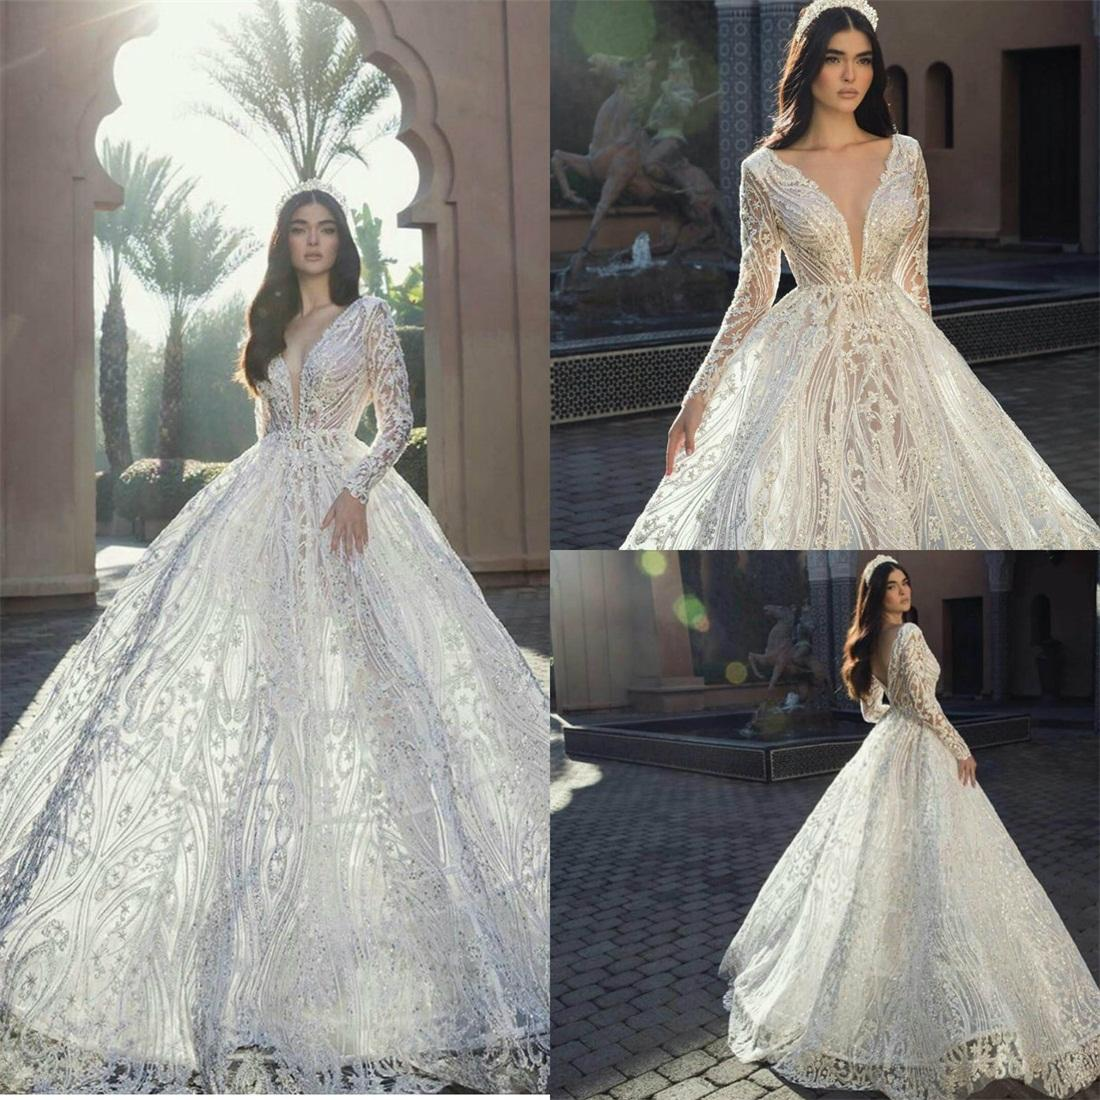 Elie Saab 2021 Country Wedding Dresses Long Sleeve V Neck Lace Appliqued Beads Beach Bridal Gowns Robe de Mariee